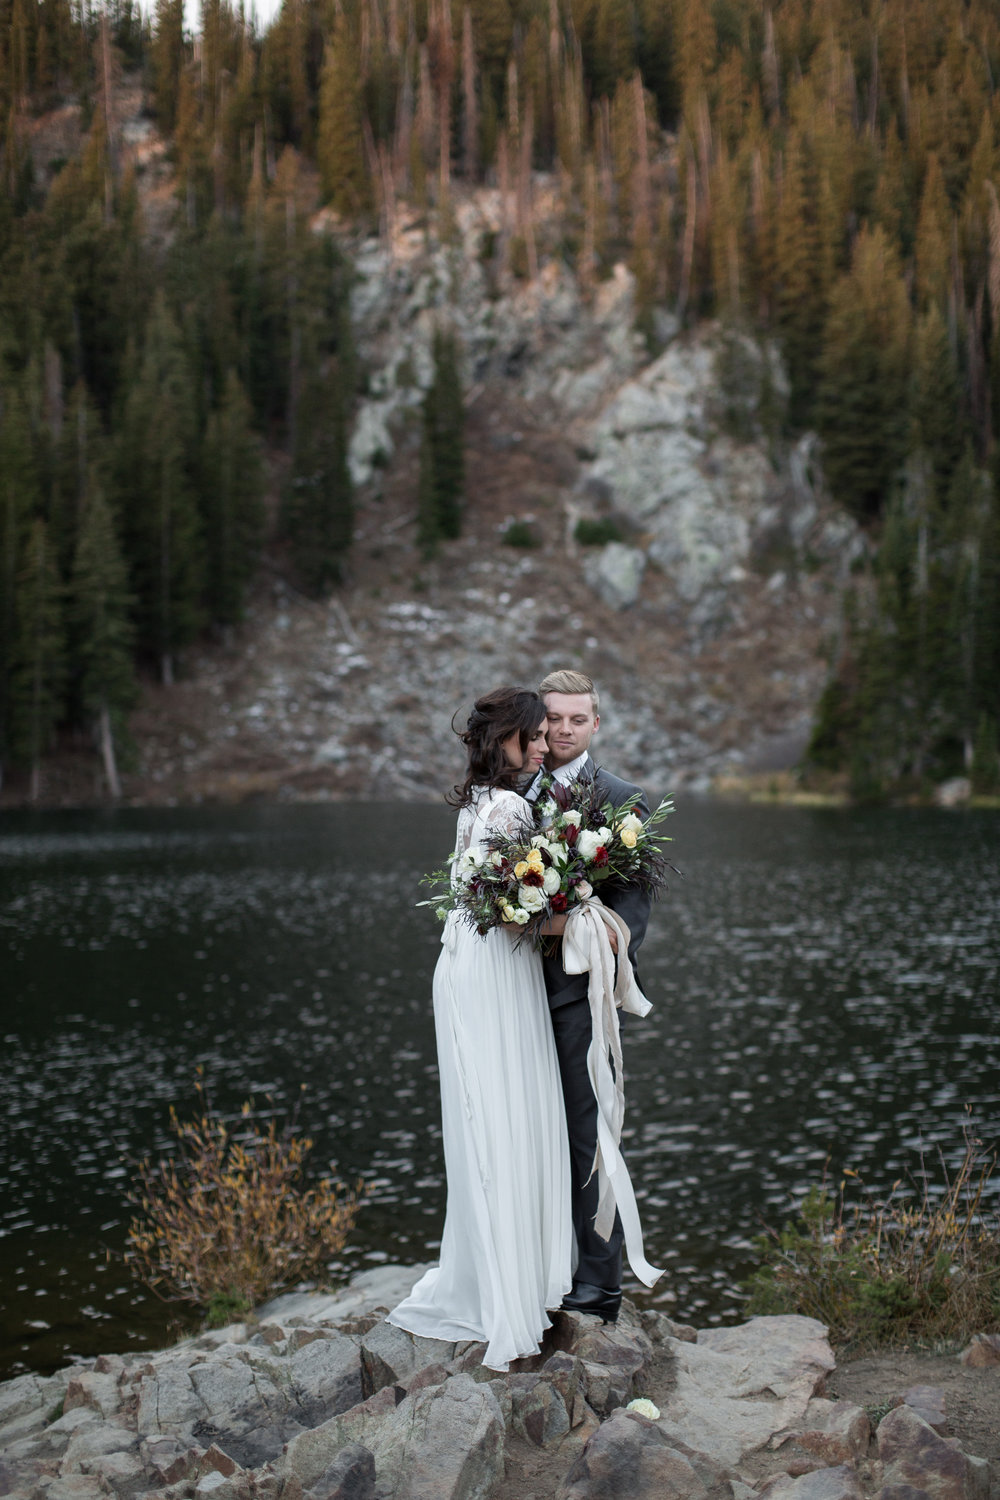 UtahValleyBrideShootTR2016 (13 of 110).jpg